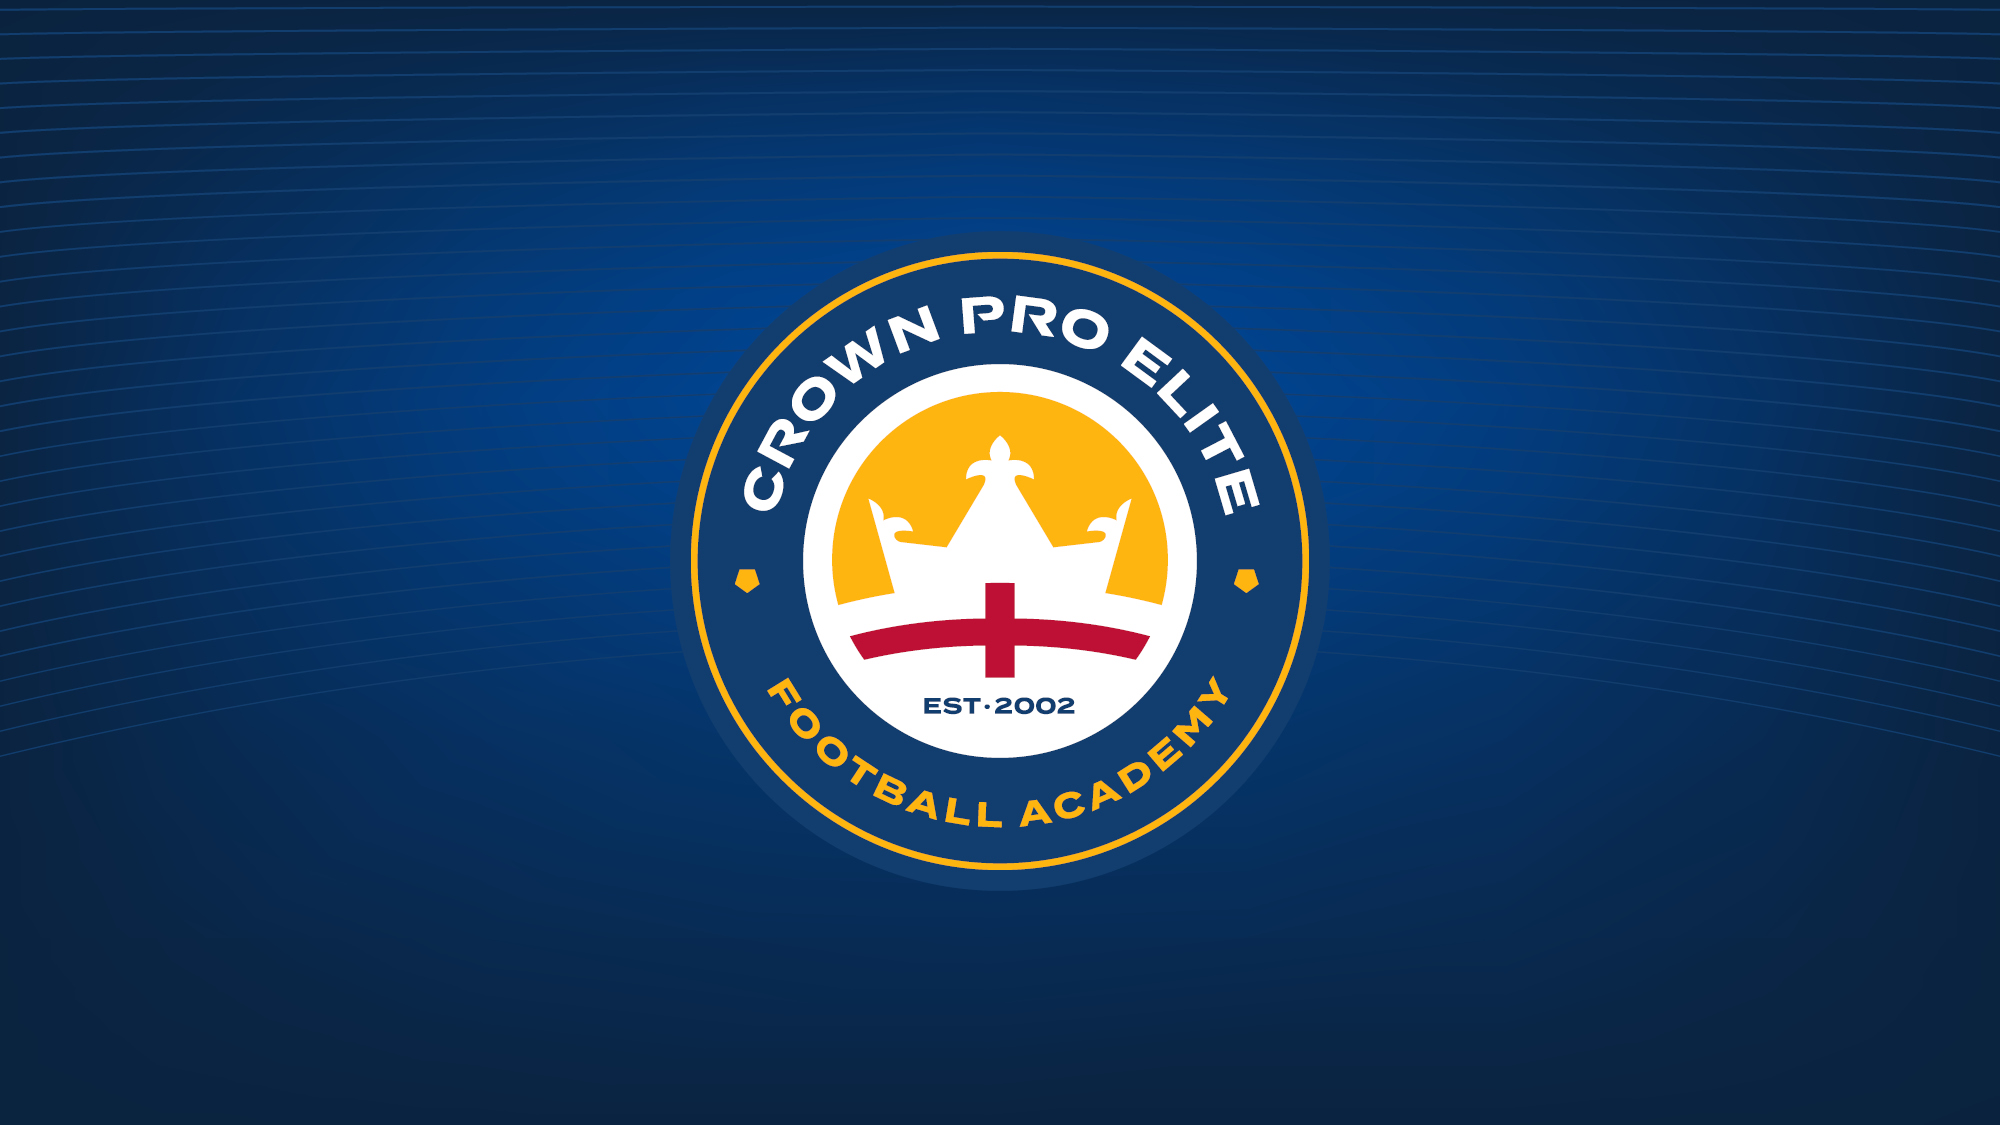 Crown Pro Elite Football Academy